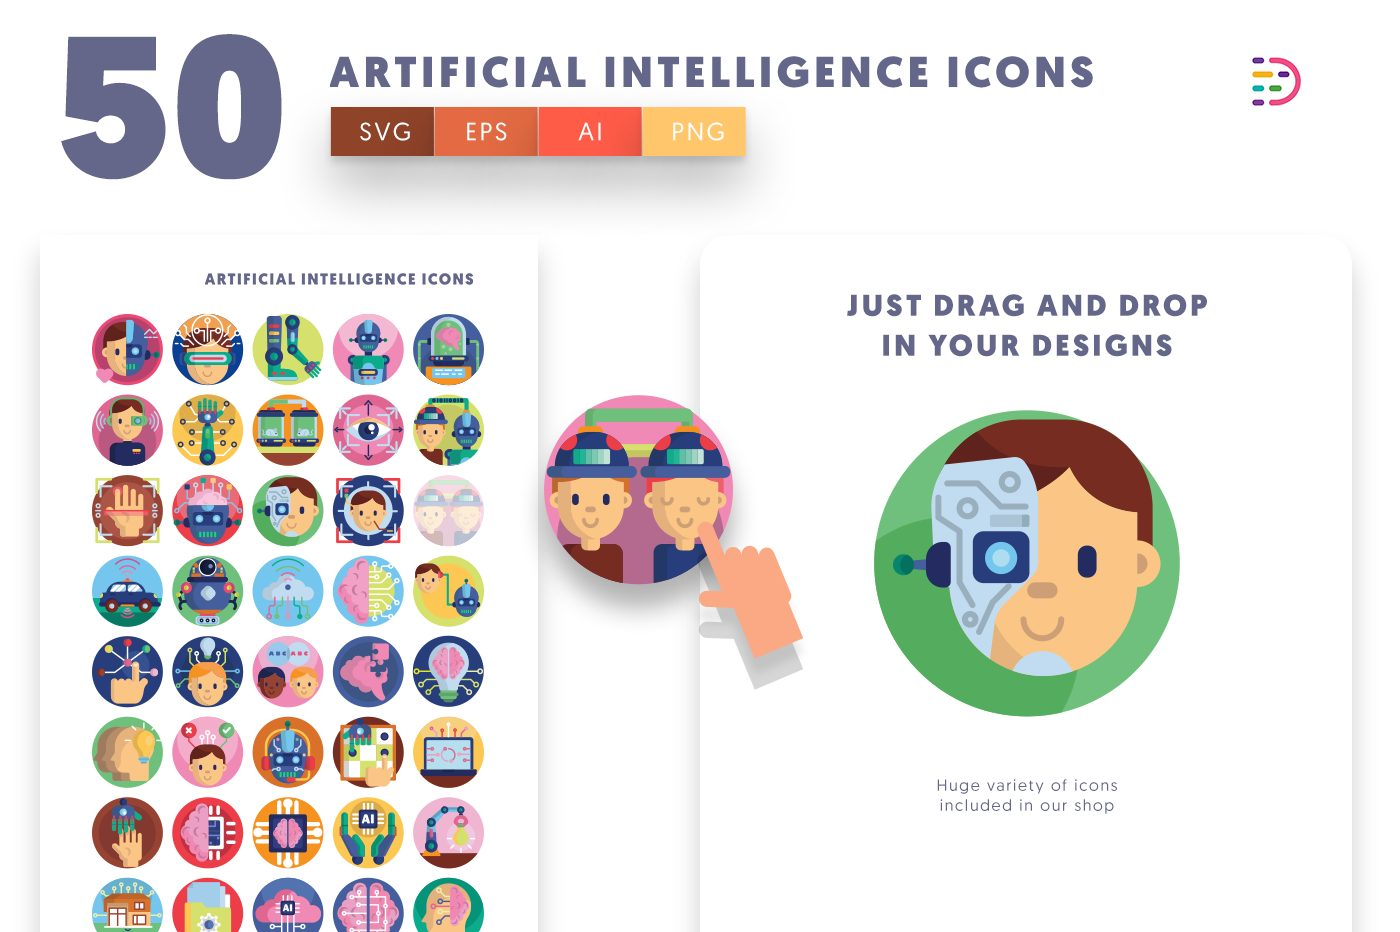 Drag and drop vector 50 Artificial Intelligence Icons